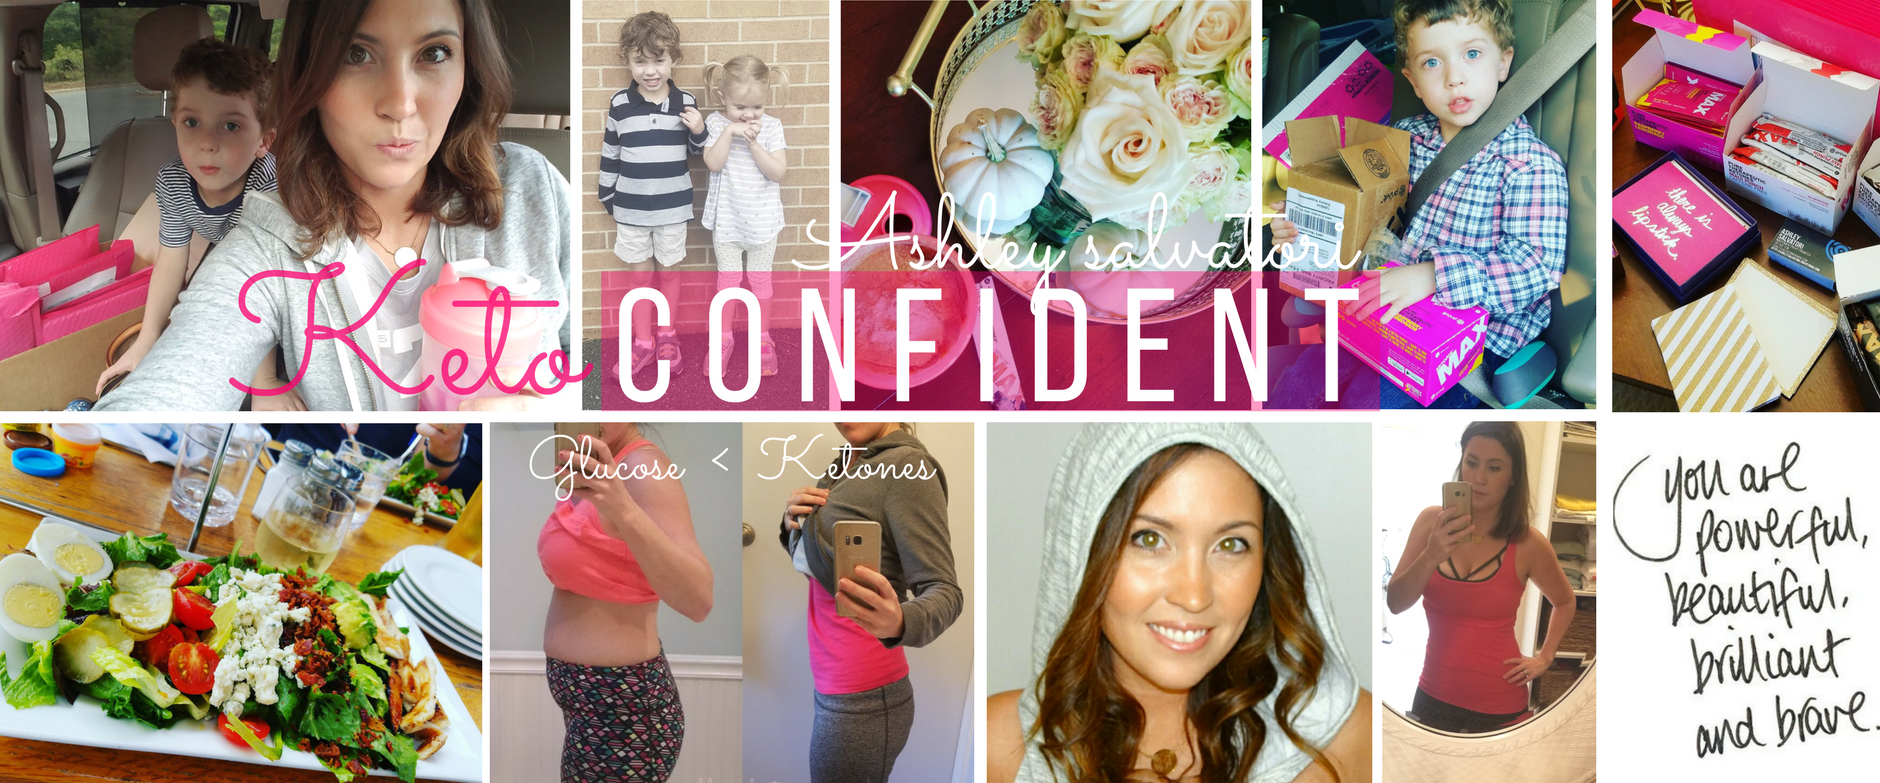 Ashley Salvatori - Keto Confident